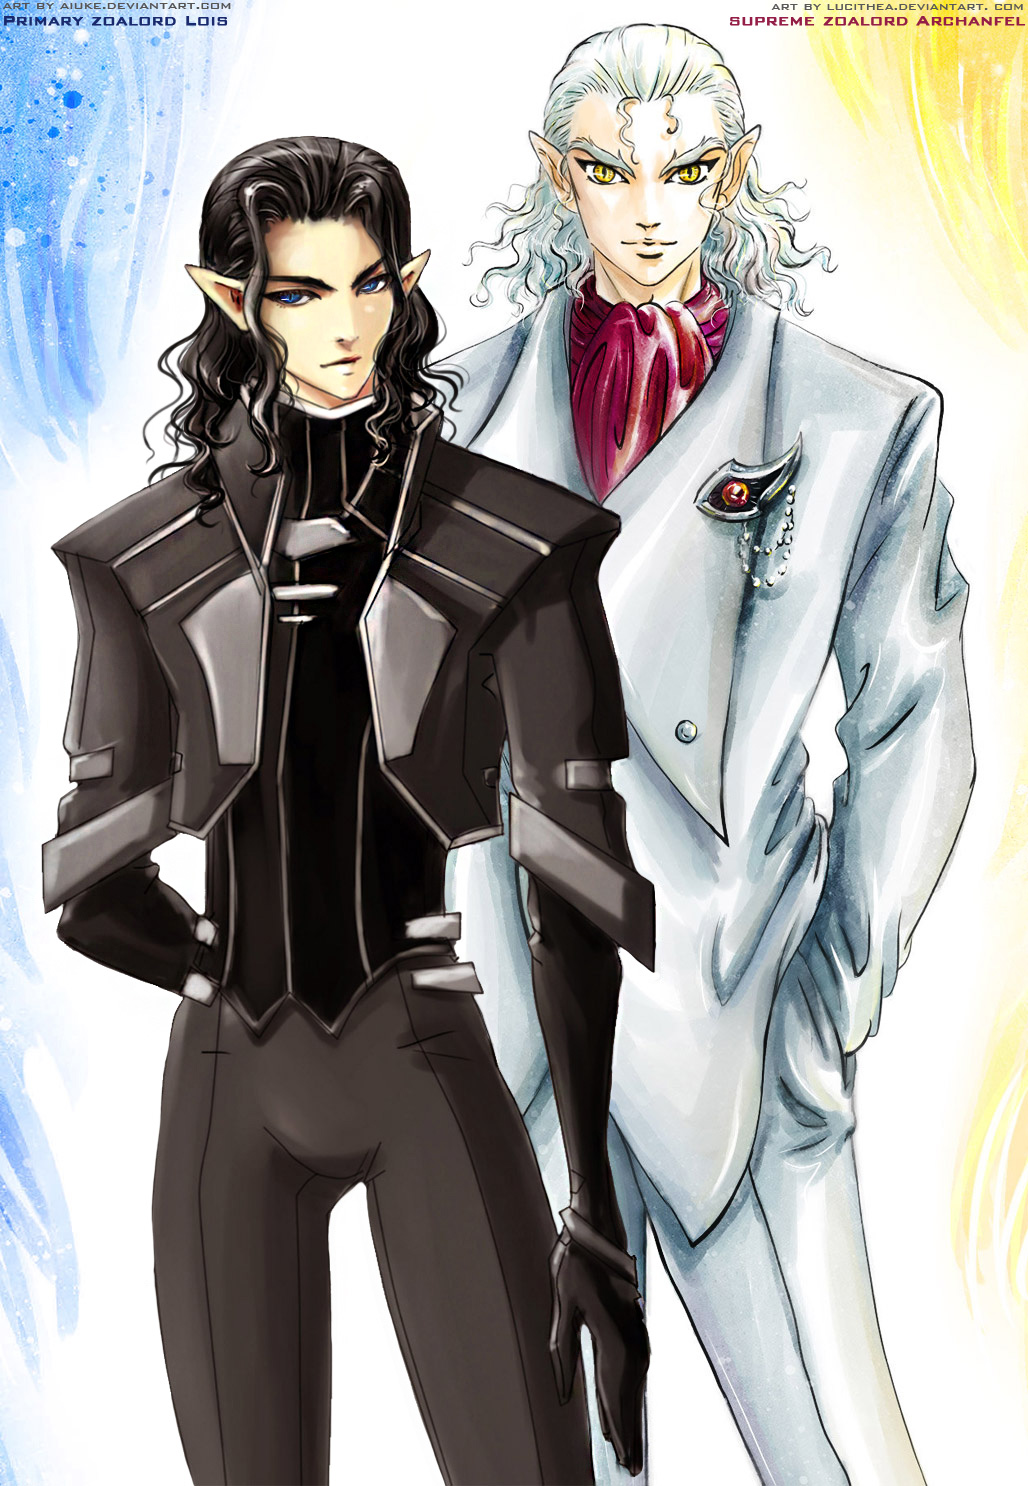 brothers Zoalords - yin and yang by Lucithea